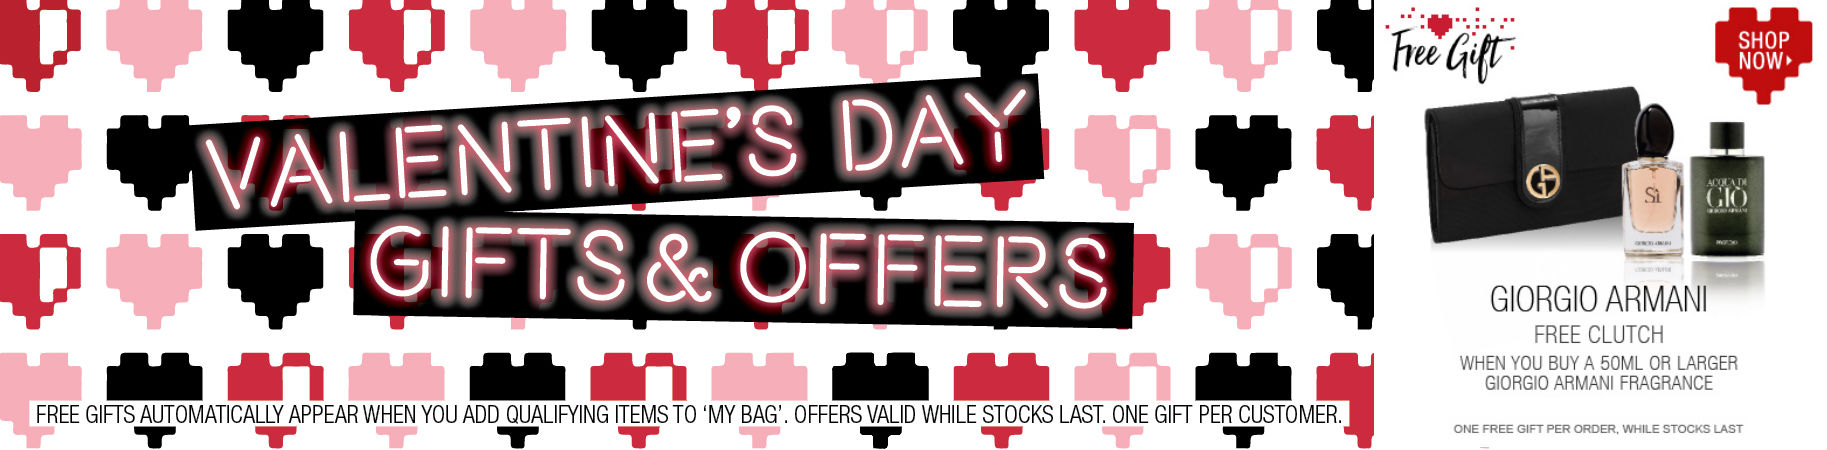 Vday Foschini offer 2